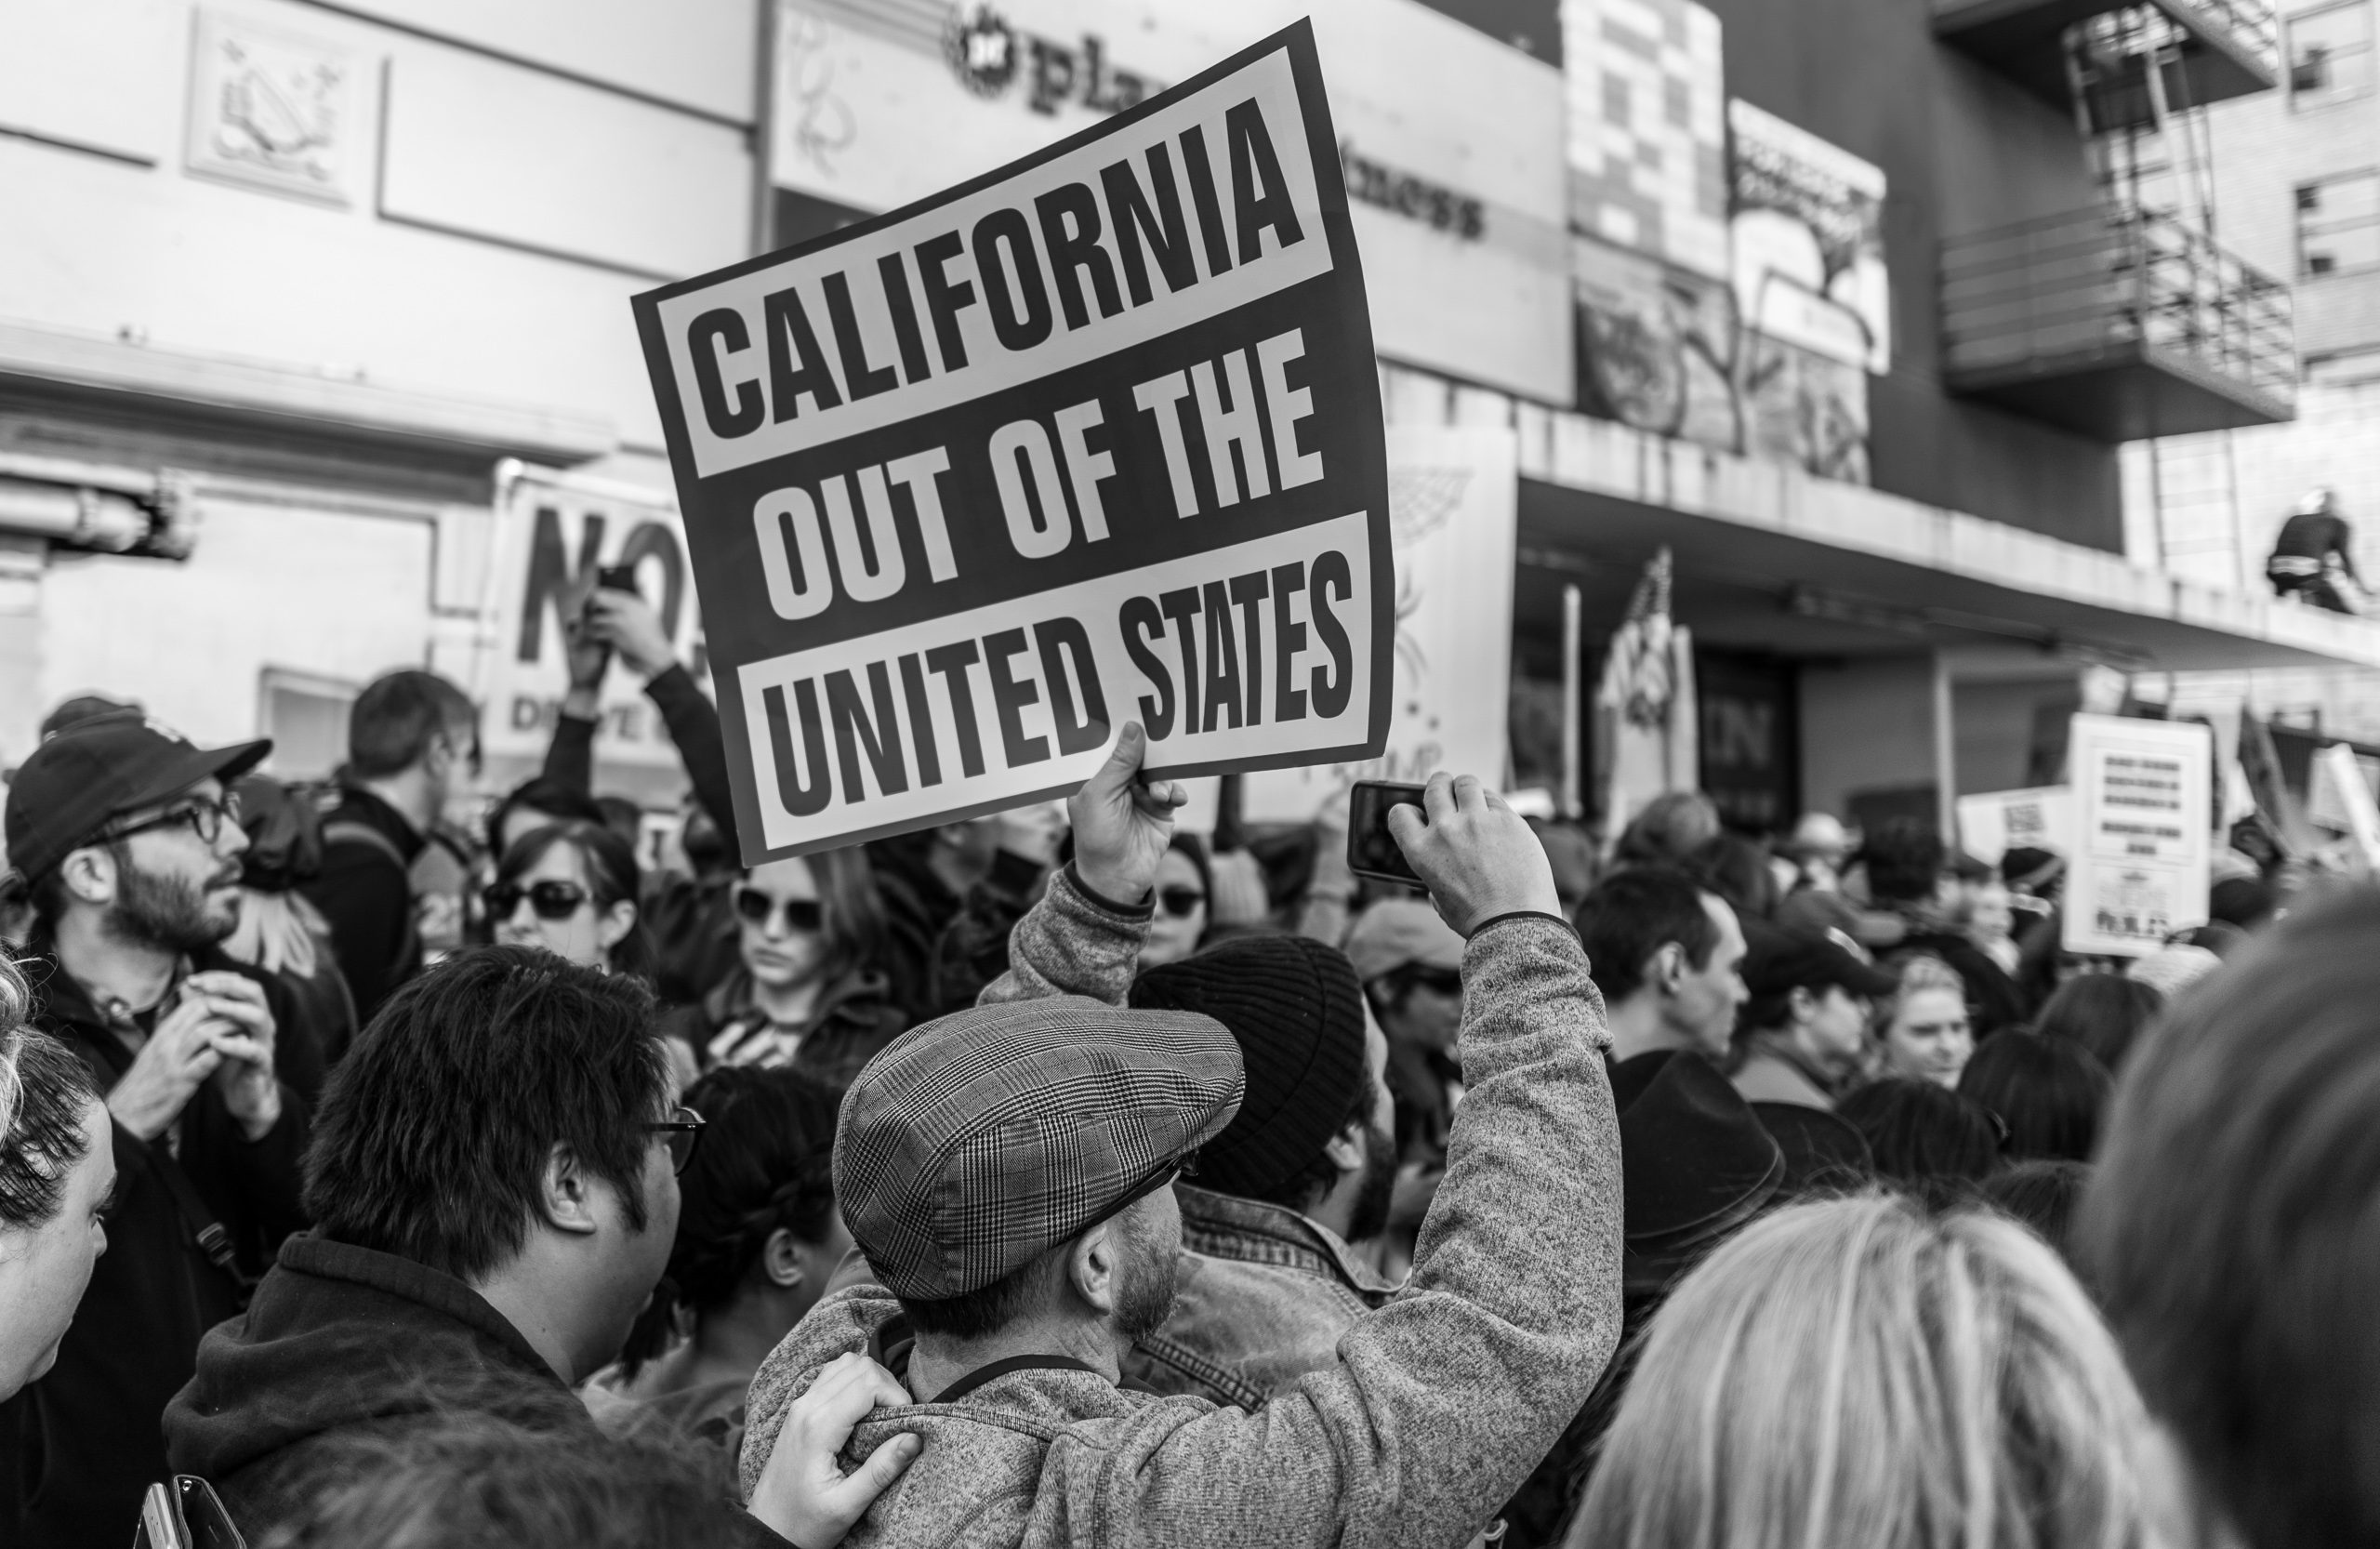 """A man walks in a very dense crowd in the Los Angeles Women's March. He holds a sign in the air that reads """"California out of the United States"""""""